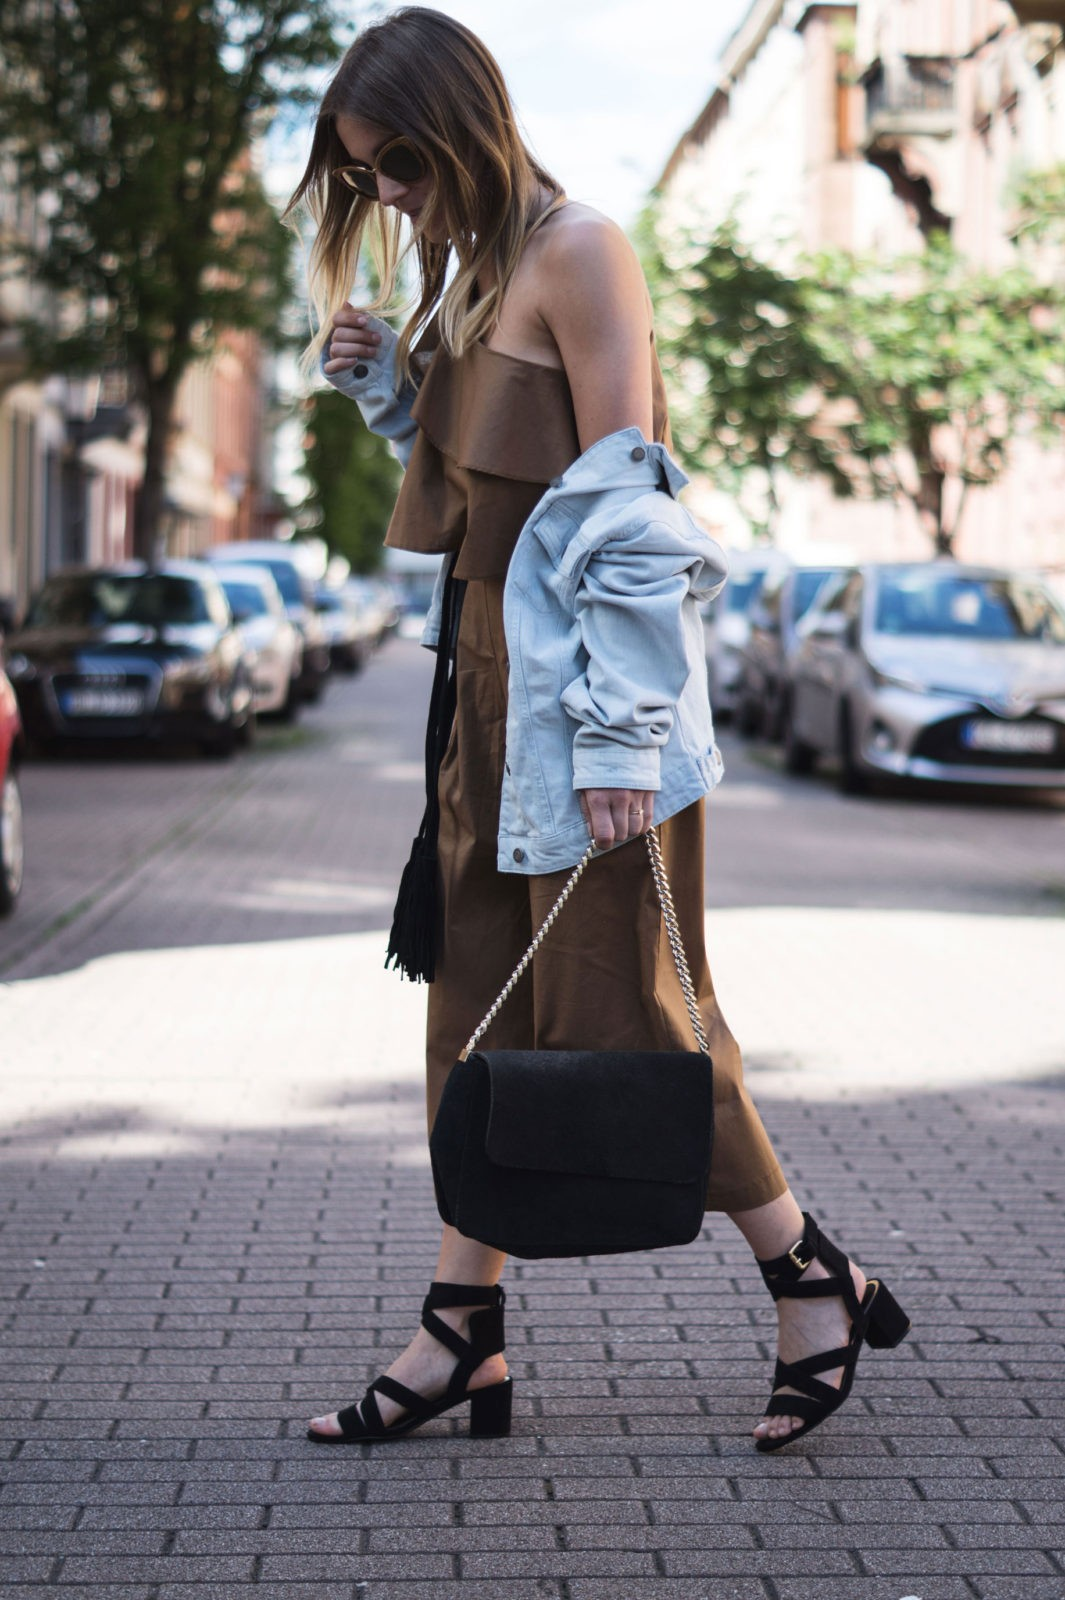 Sariety Modeblog Sarah Czok Fashionblogger Streetstyle Outfit Jumpsuit Obersize Denim Jeansjacke-10